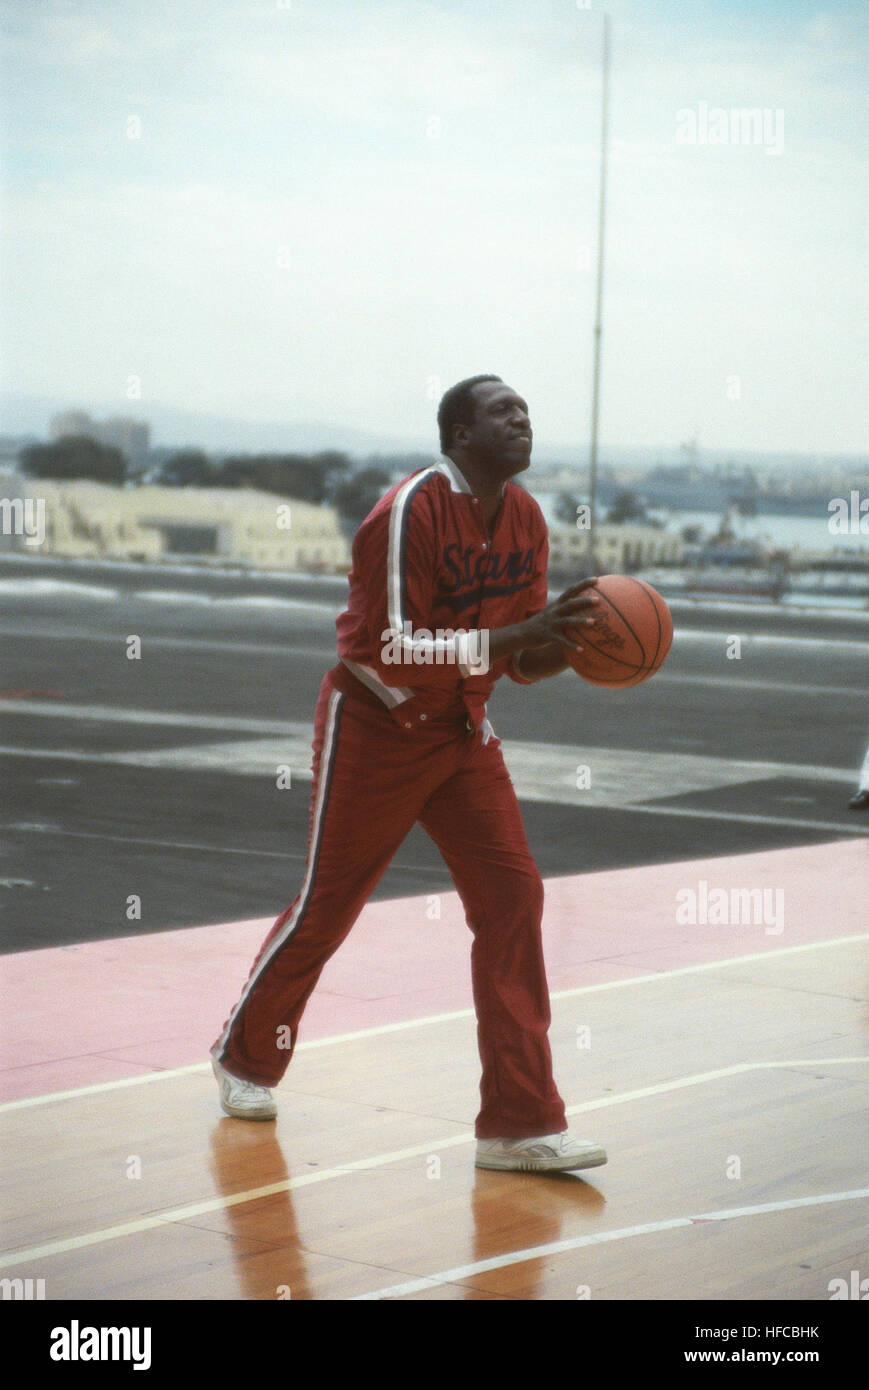 Star player, Meadowlark Lemon, formerly of the Harlem Globe Trotters, warms up for the game.  A  regulation basketball - Stock Image